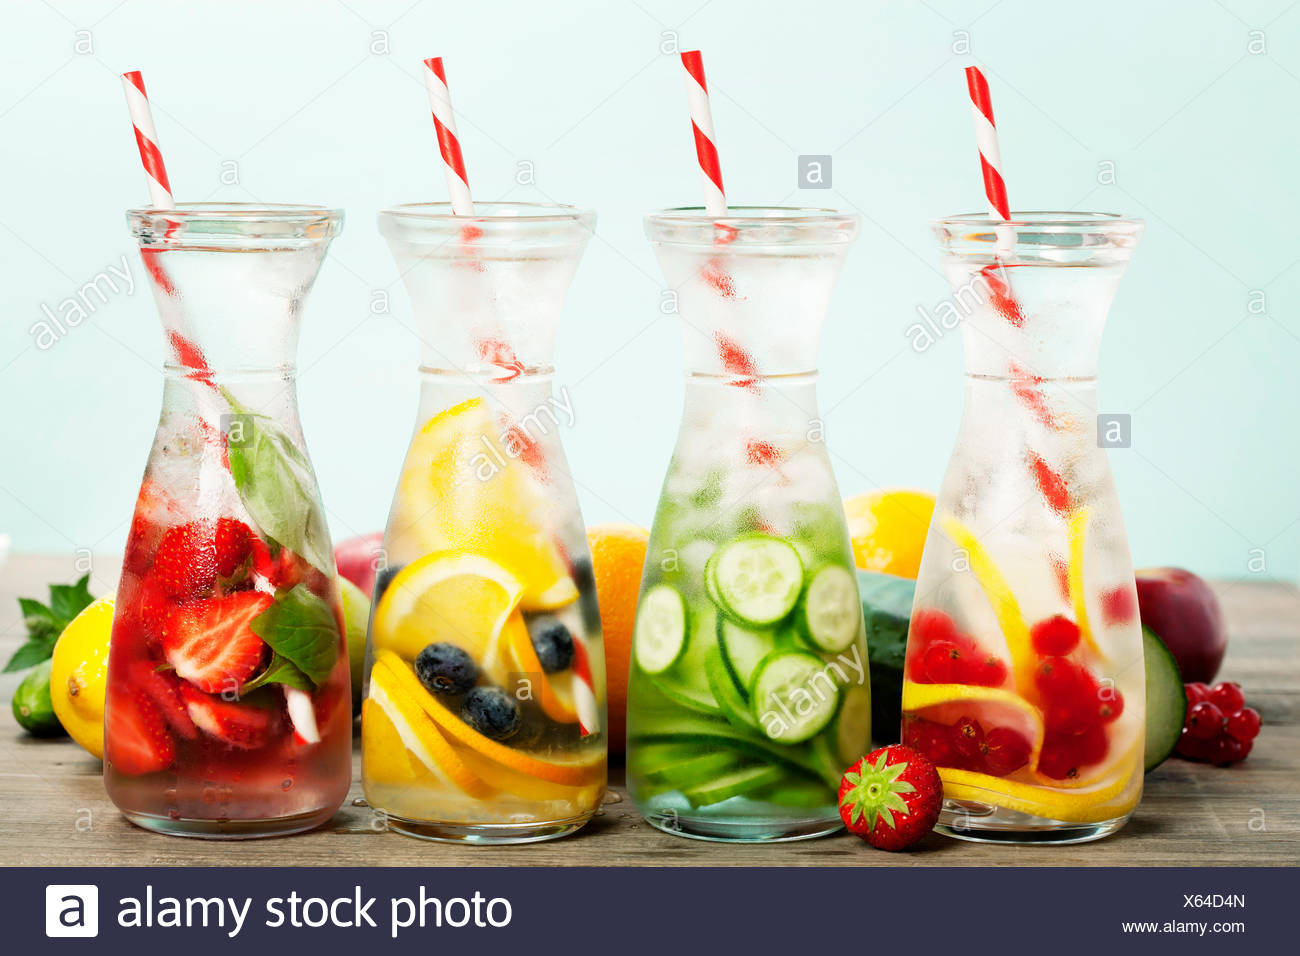 Detox fruit infused flavored water. Refreshing summer homemade cocktail - Stock Image